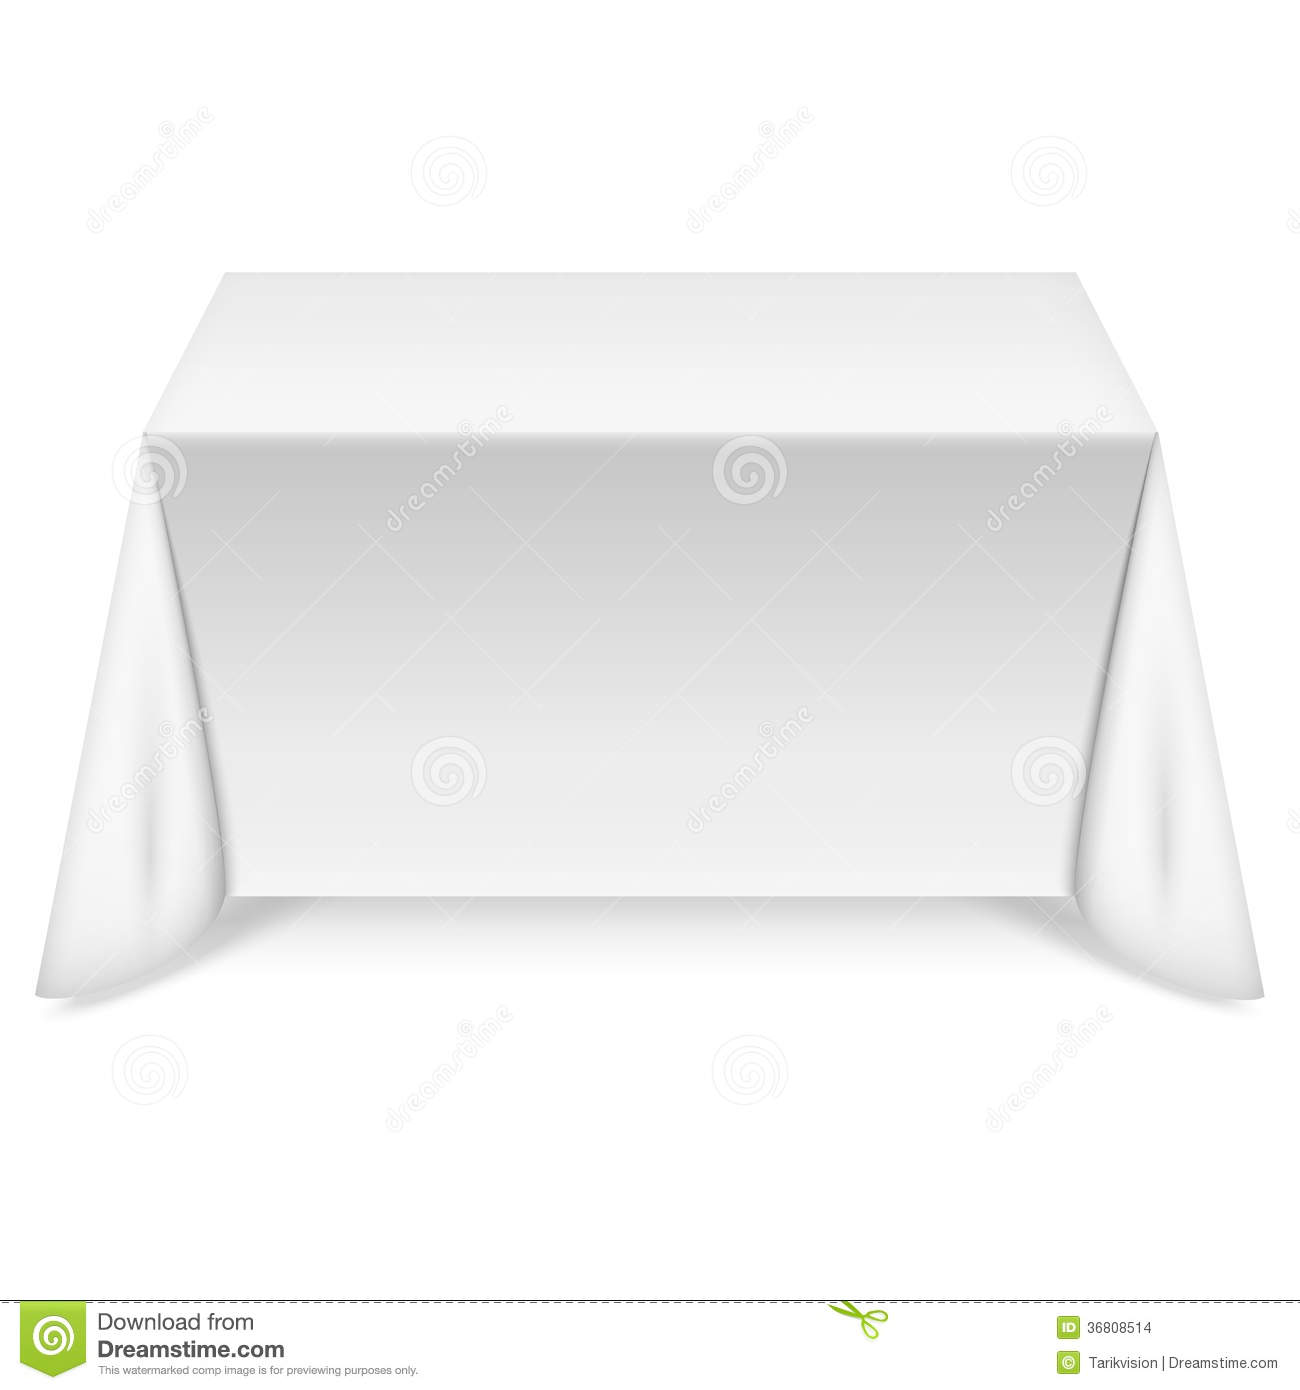 Table Blanche Rectangulaire Table Rectangulaire Avec La Nappe Blanche Illustration De